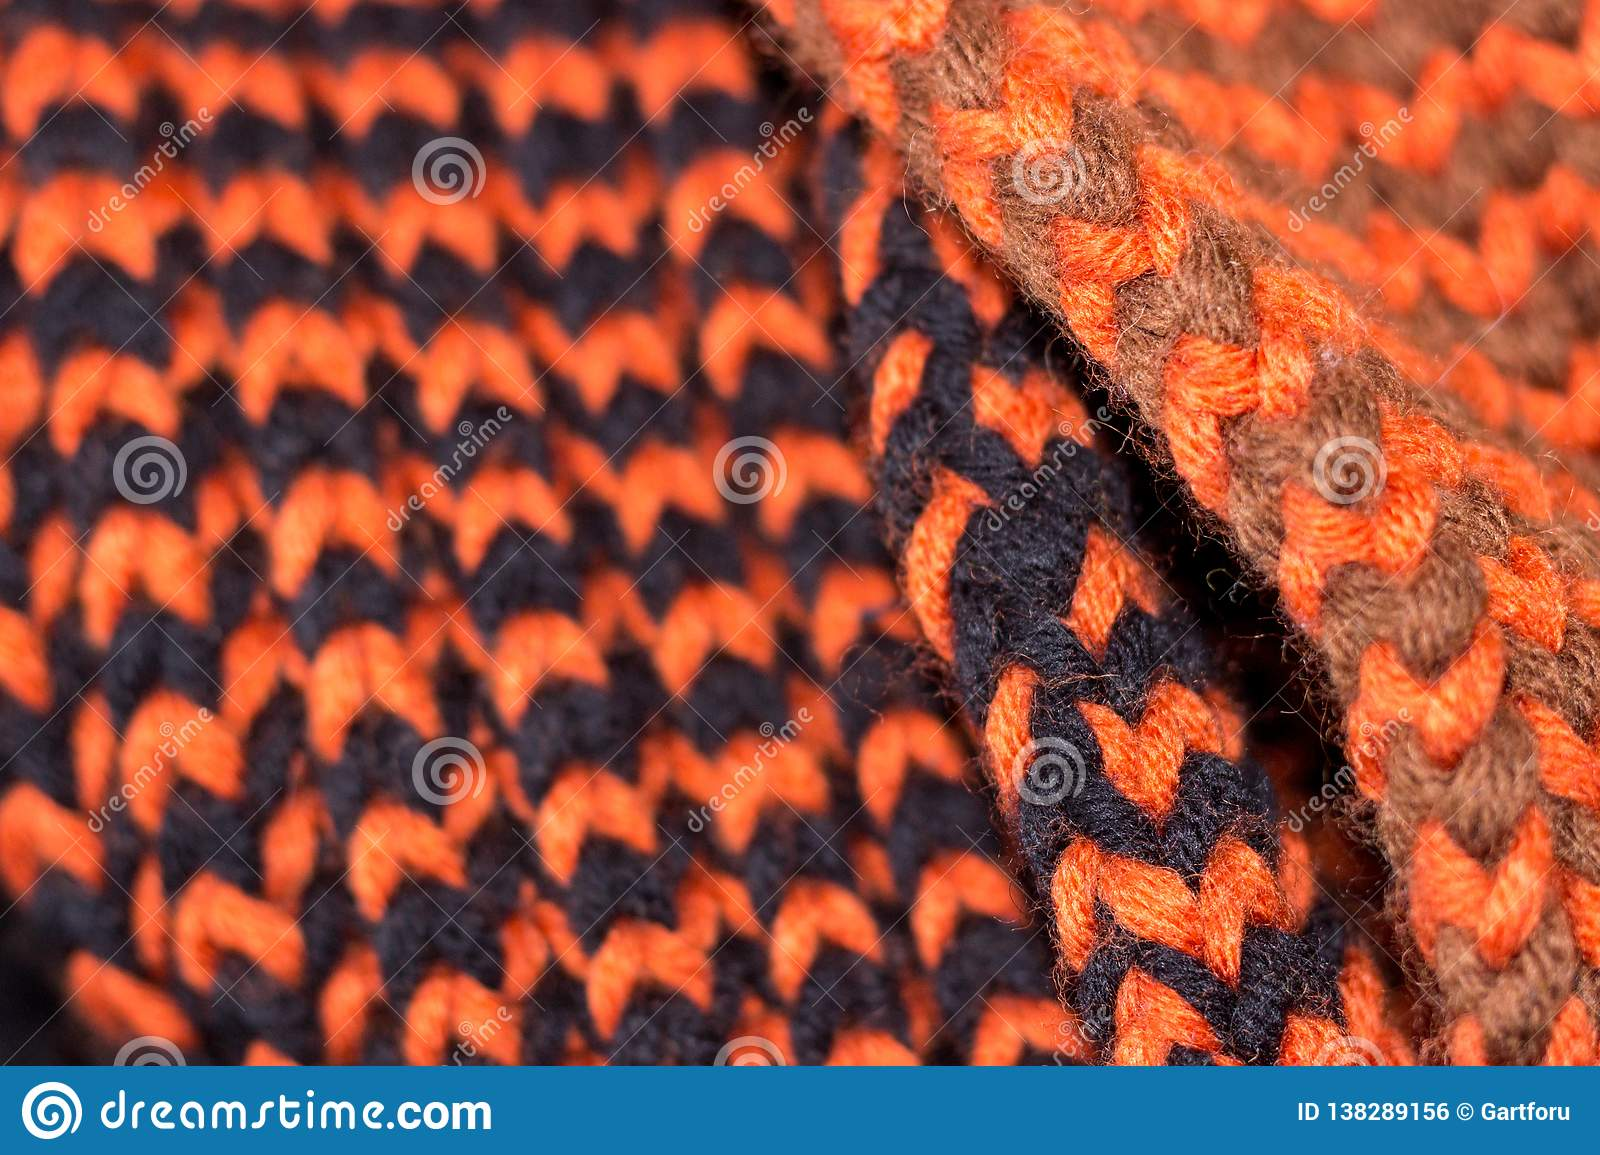 Knitting. Background knitted texture. Bright knitting needles. Orange and black wool yarn for knitting